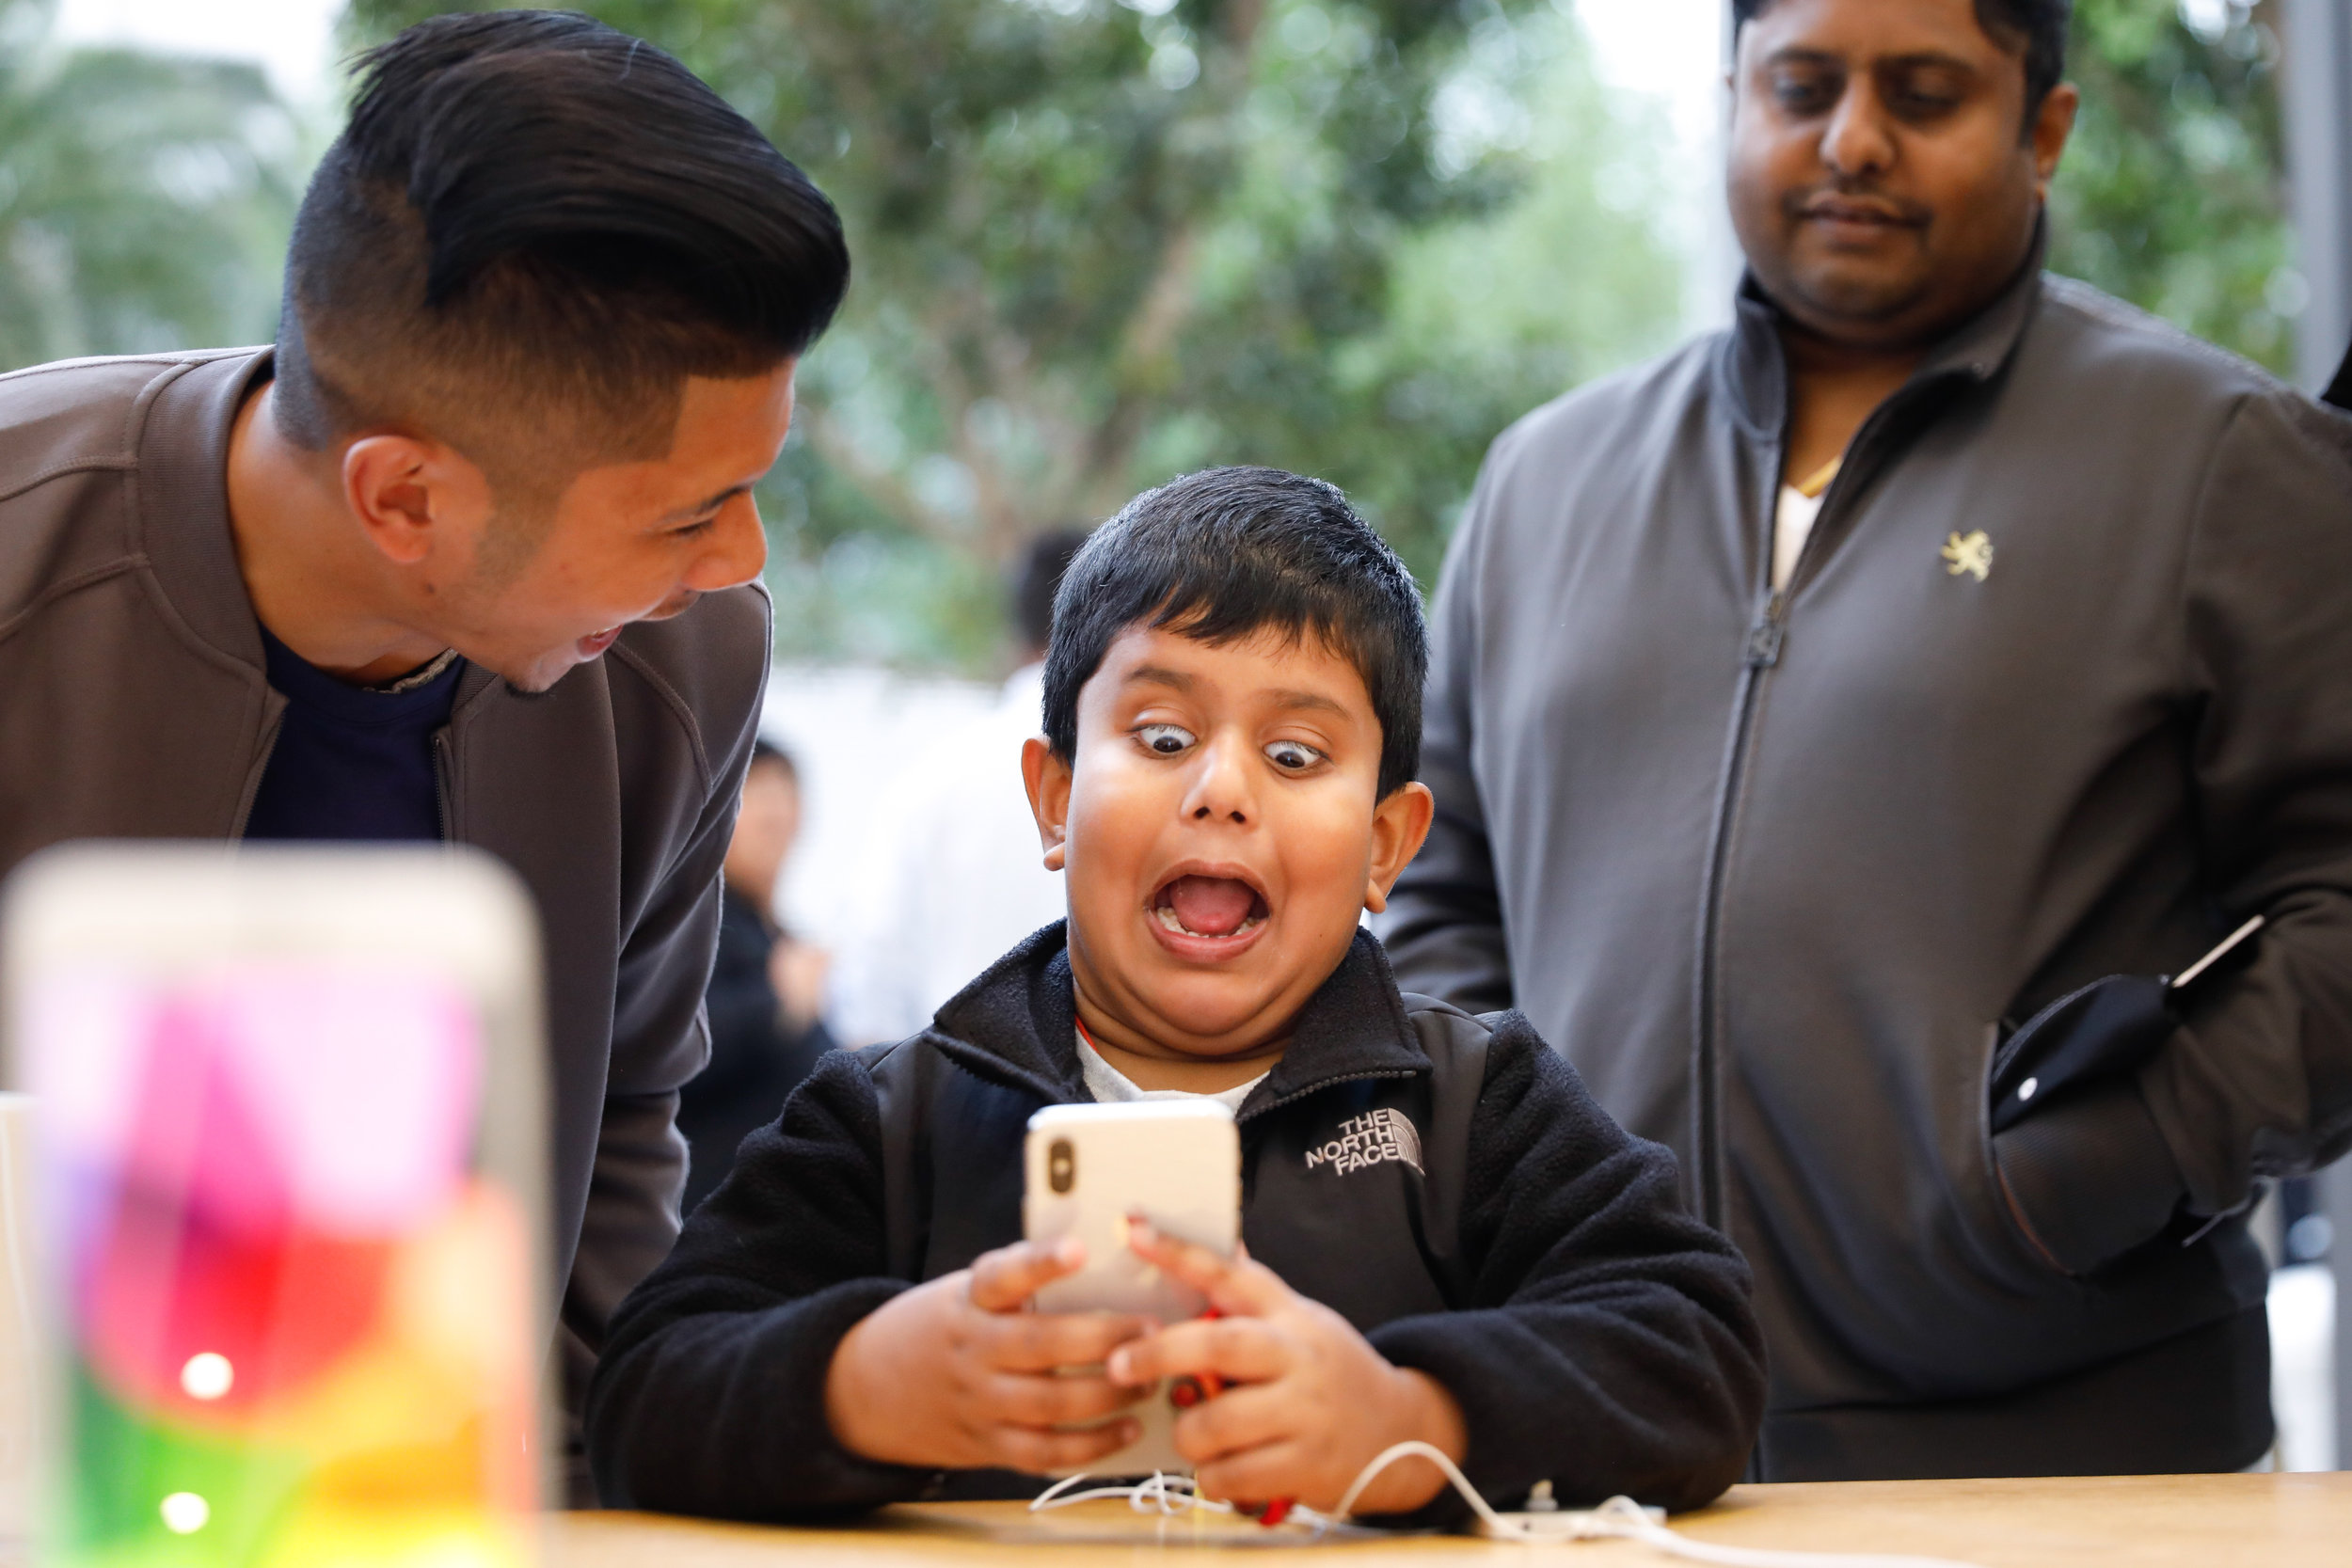 A boy uses the Animoji feature of the iPhone X on the first day of sales at the Apple Store Union Square in San Francisco, California